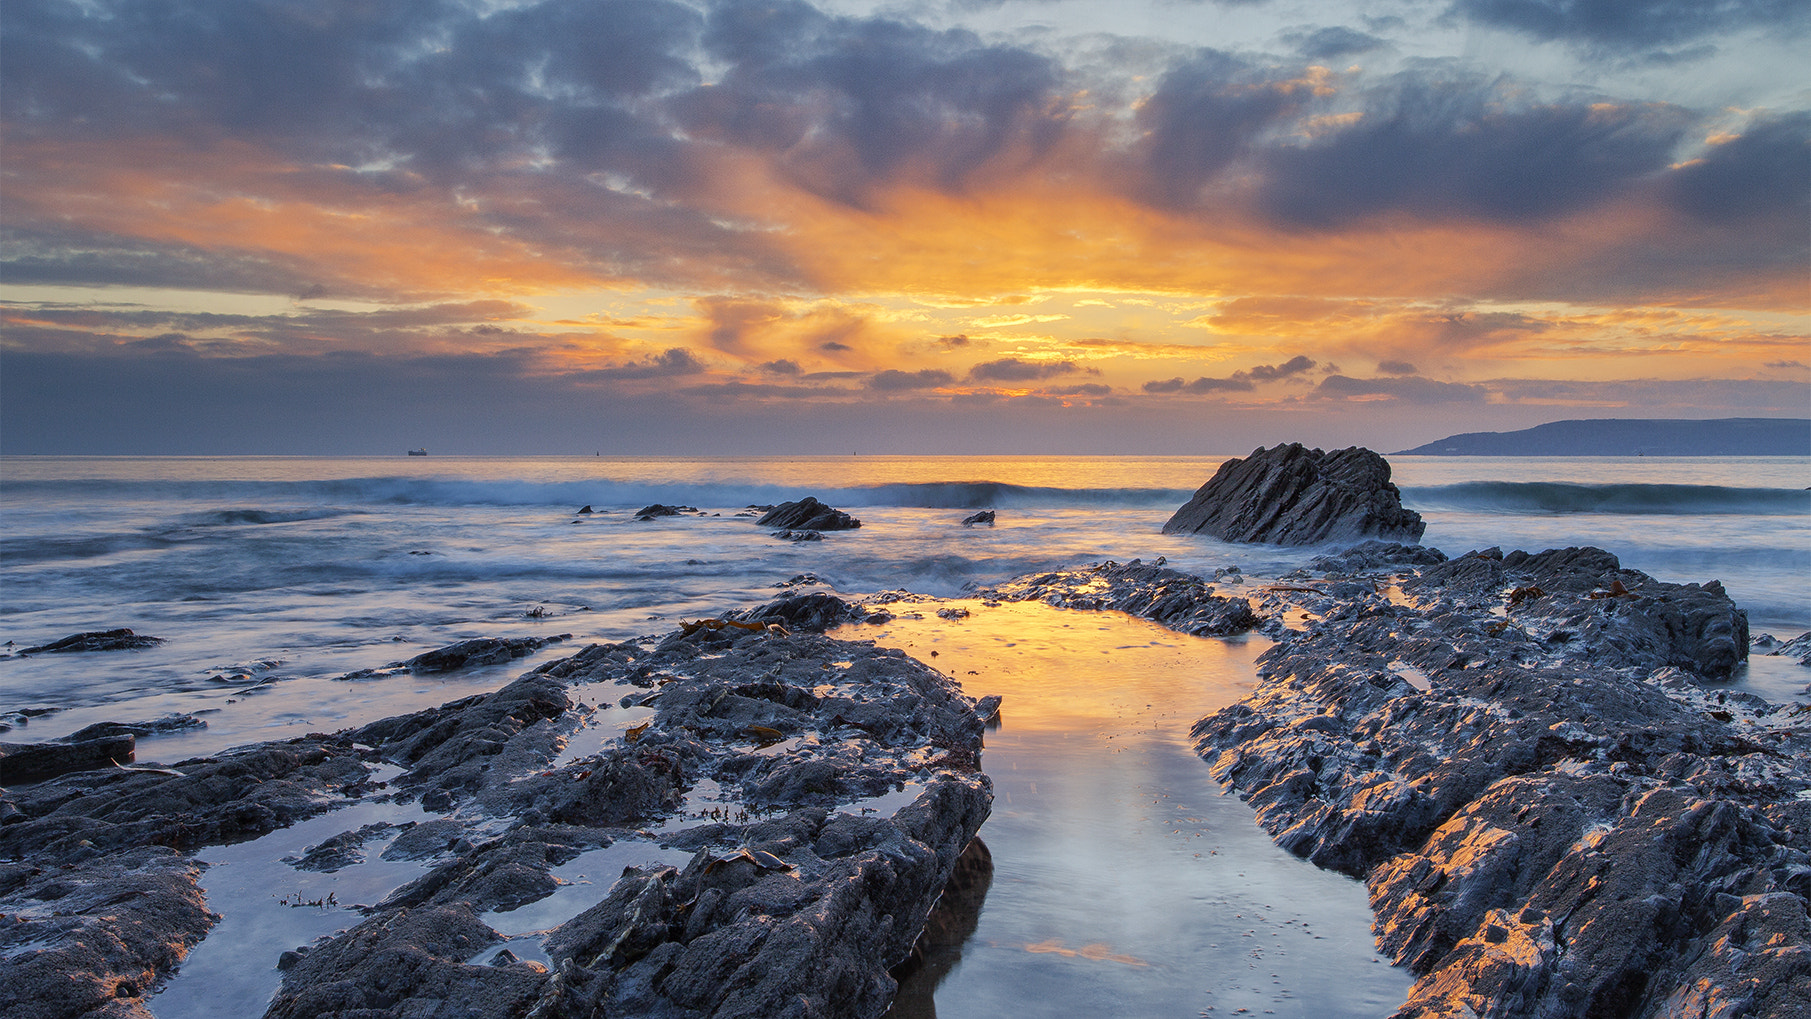 Photograph Cold Tangerine Sky by Chris Marshall on 500px